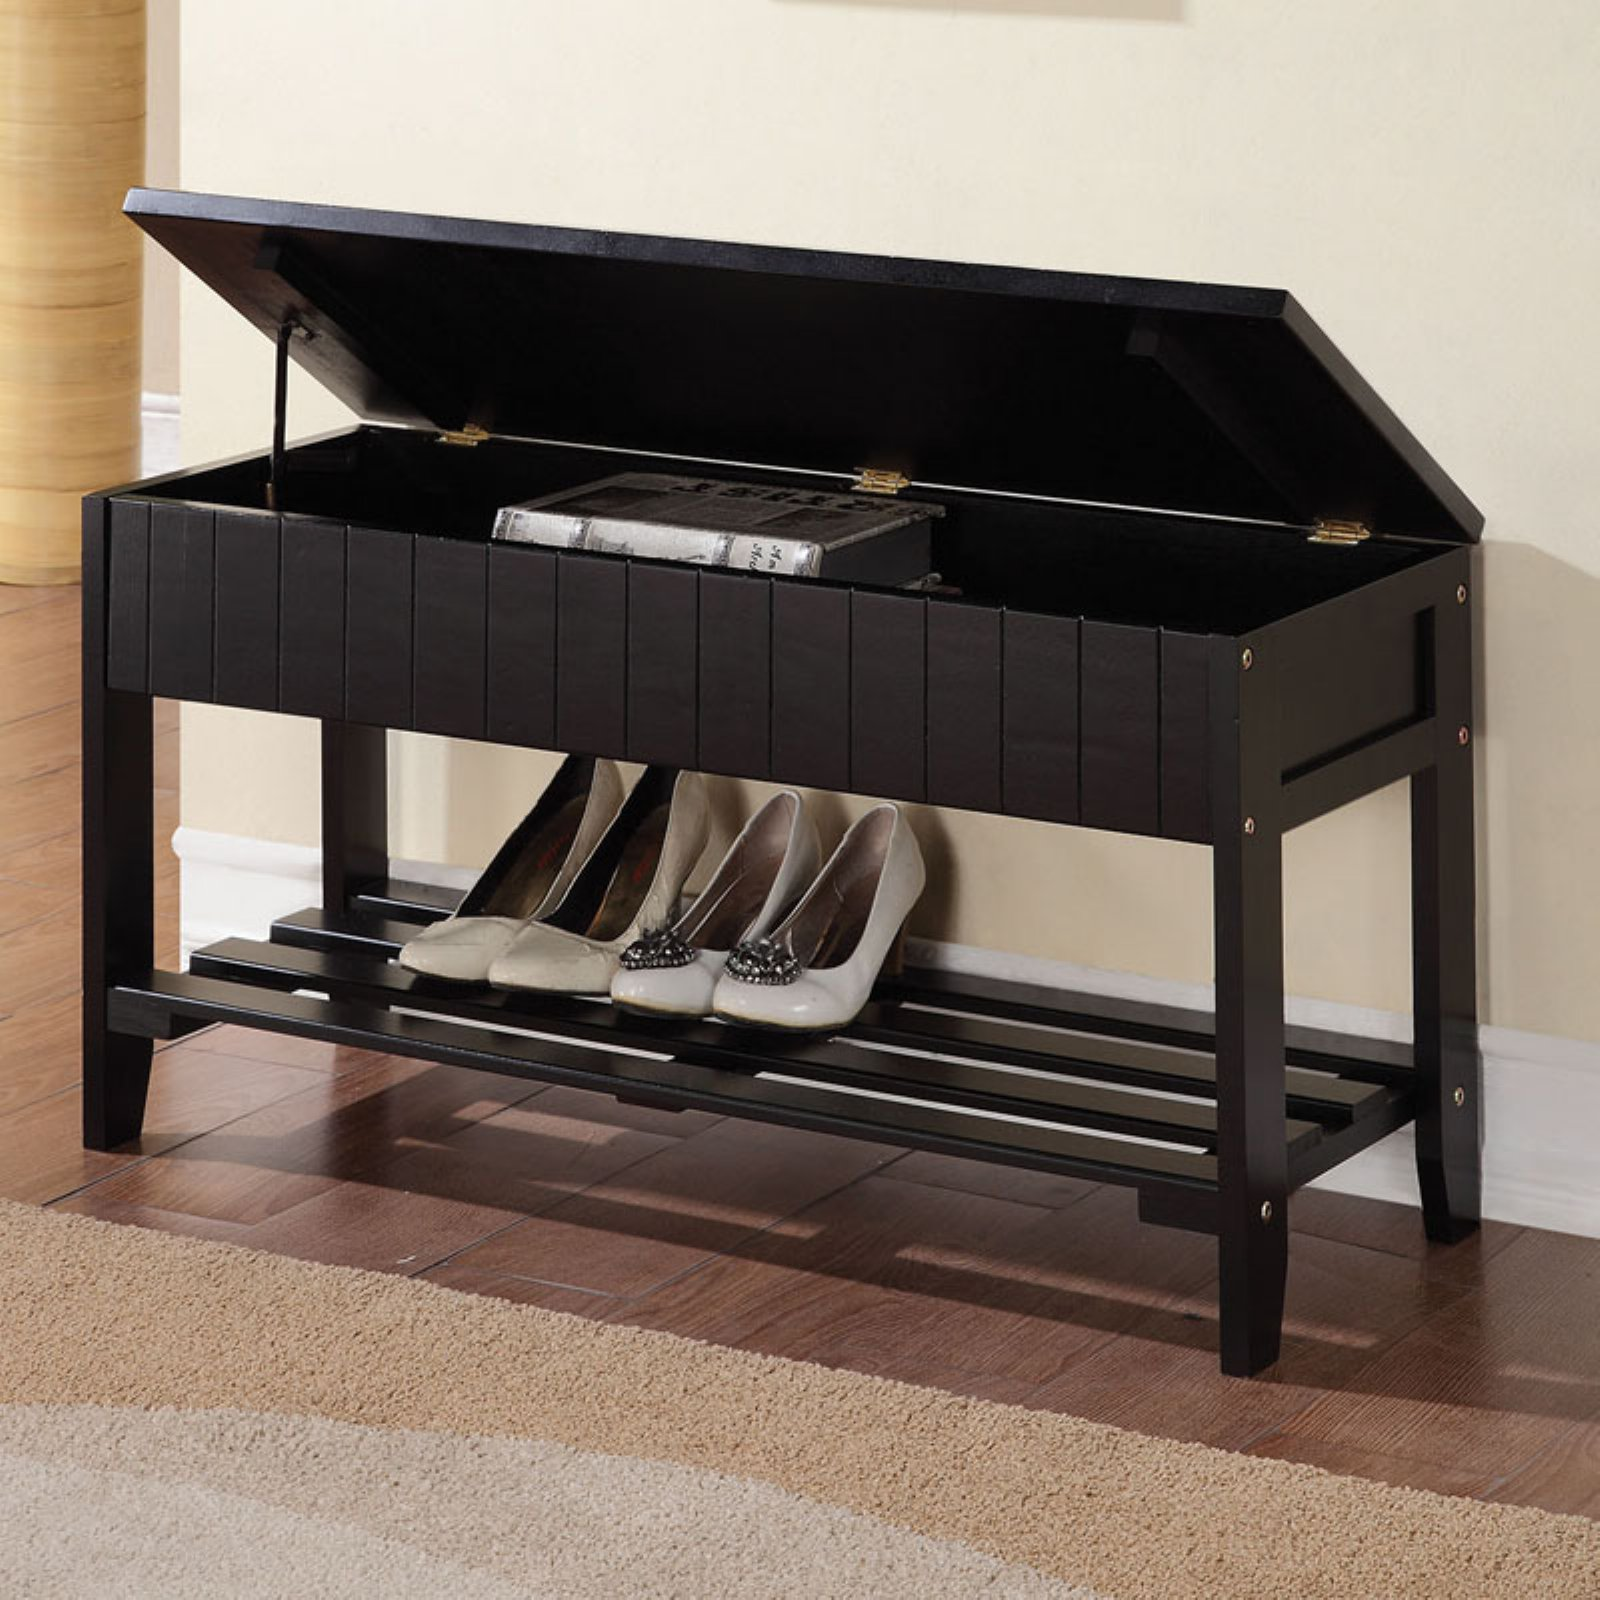 ACME Xio Storage Bench, Black by Acme Furniture